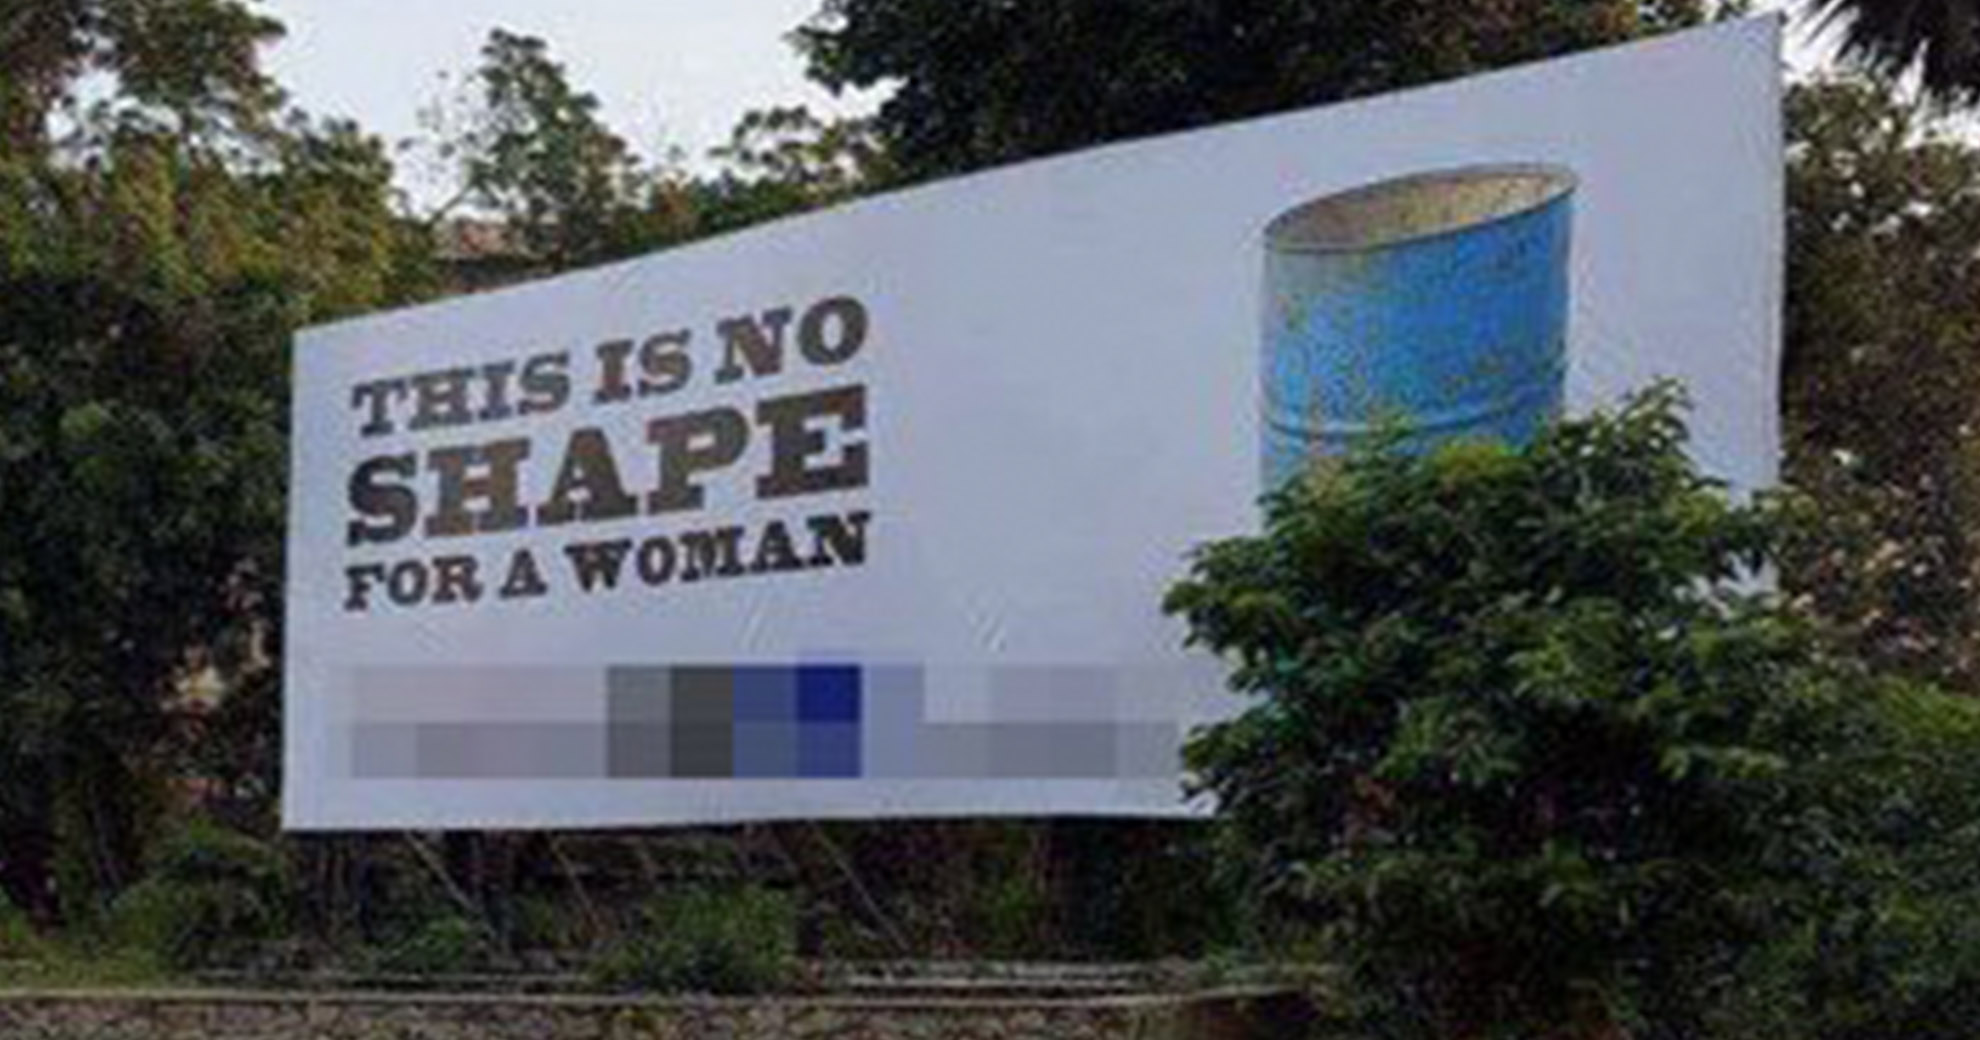 Gym Puts Up Offensive, 'Body-Shaming' Billboard—So Women Took Matters Into Their Own Hands